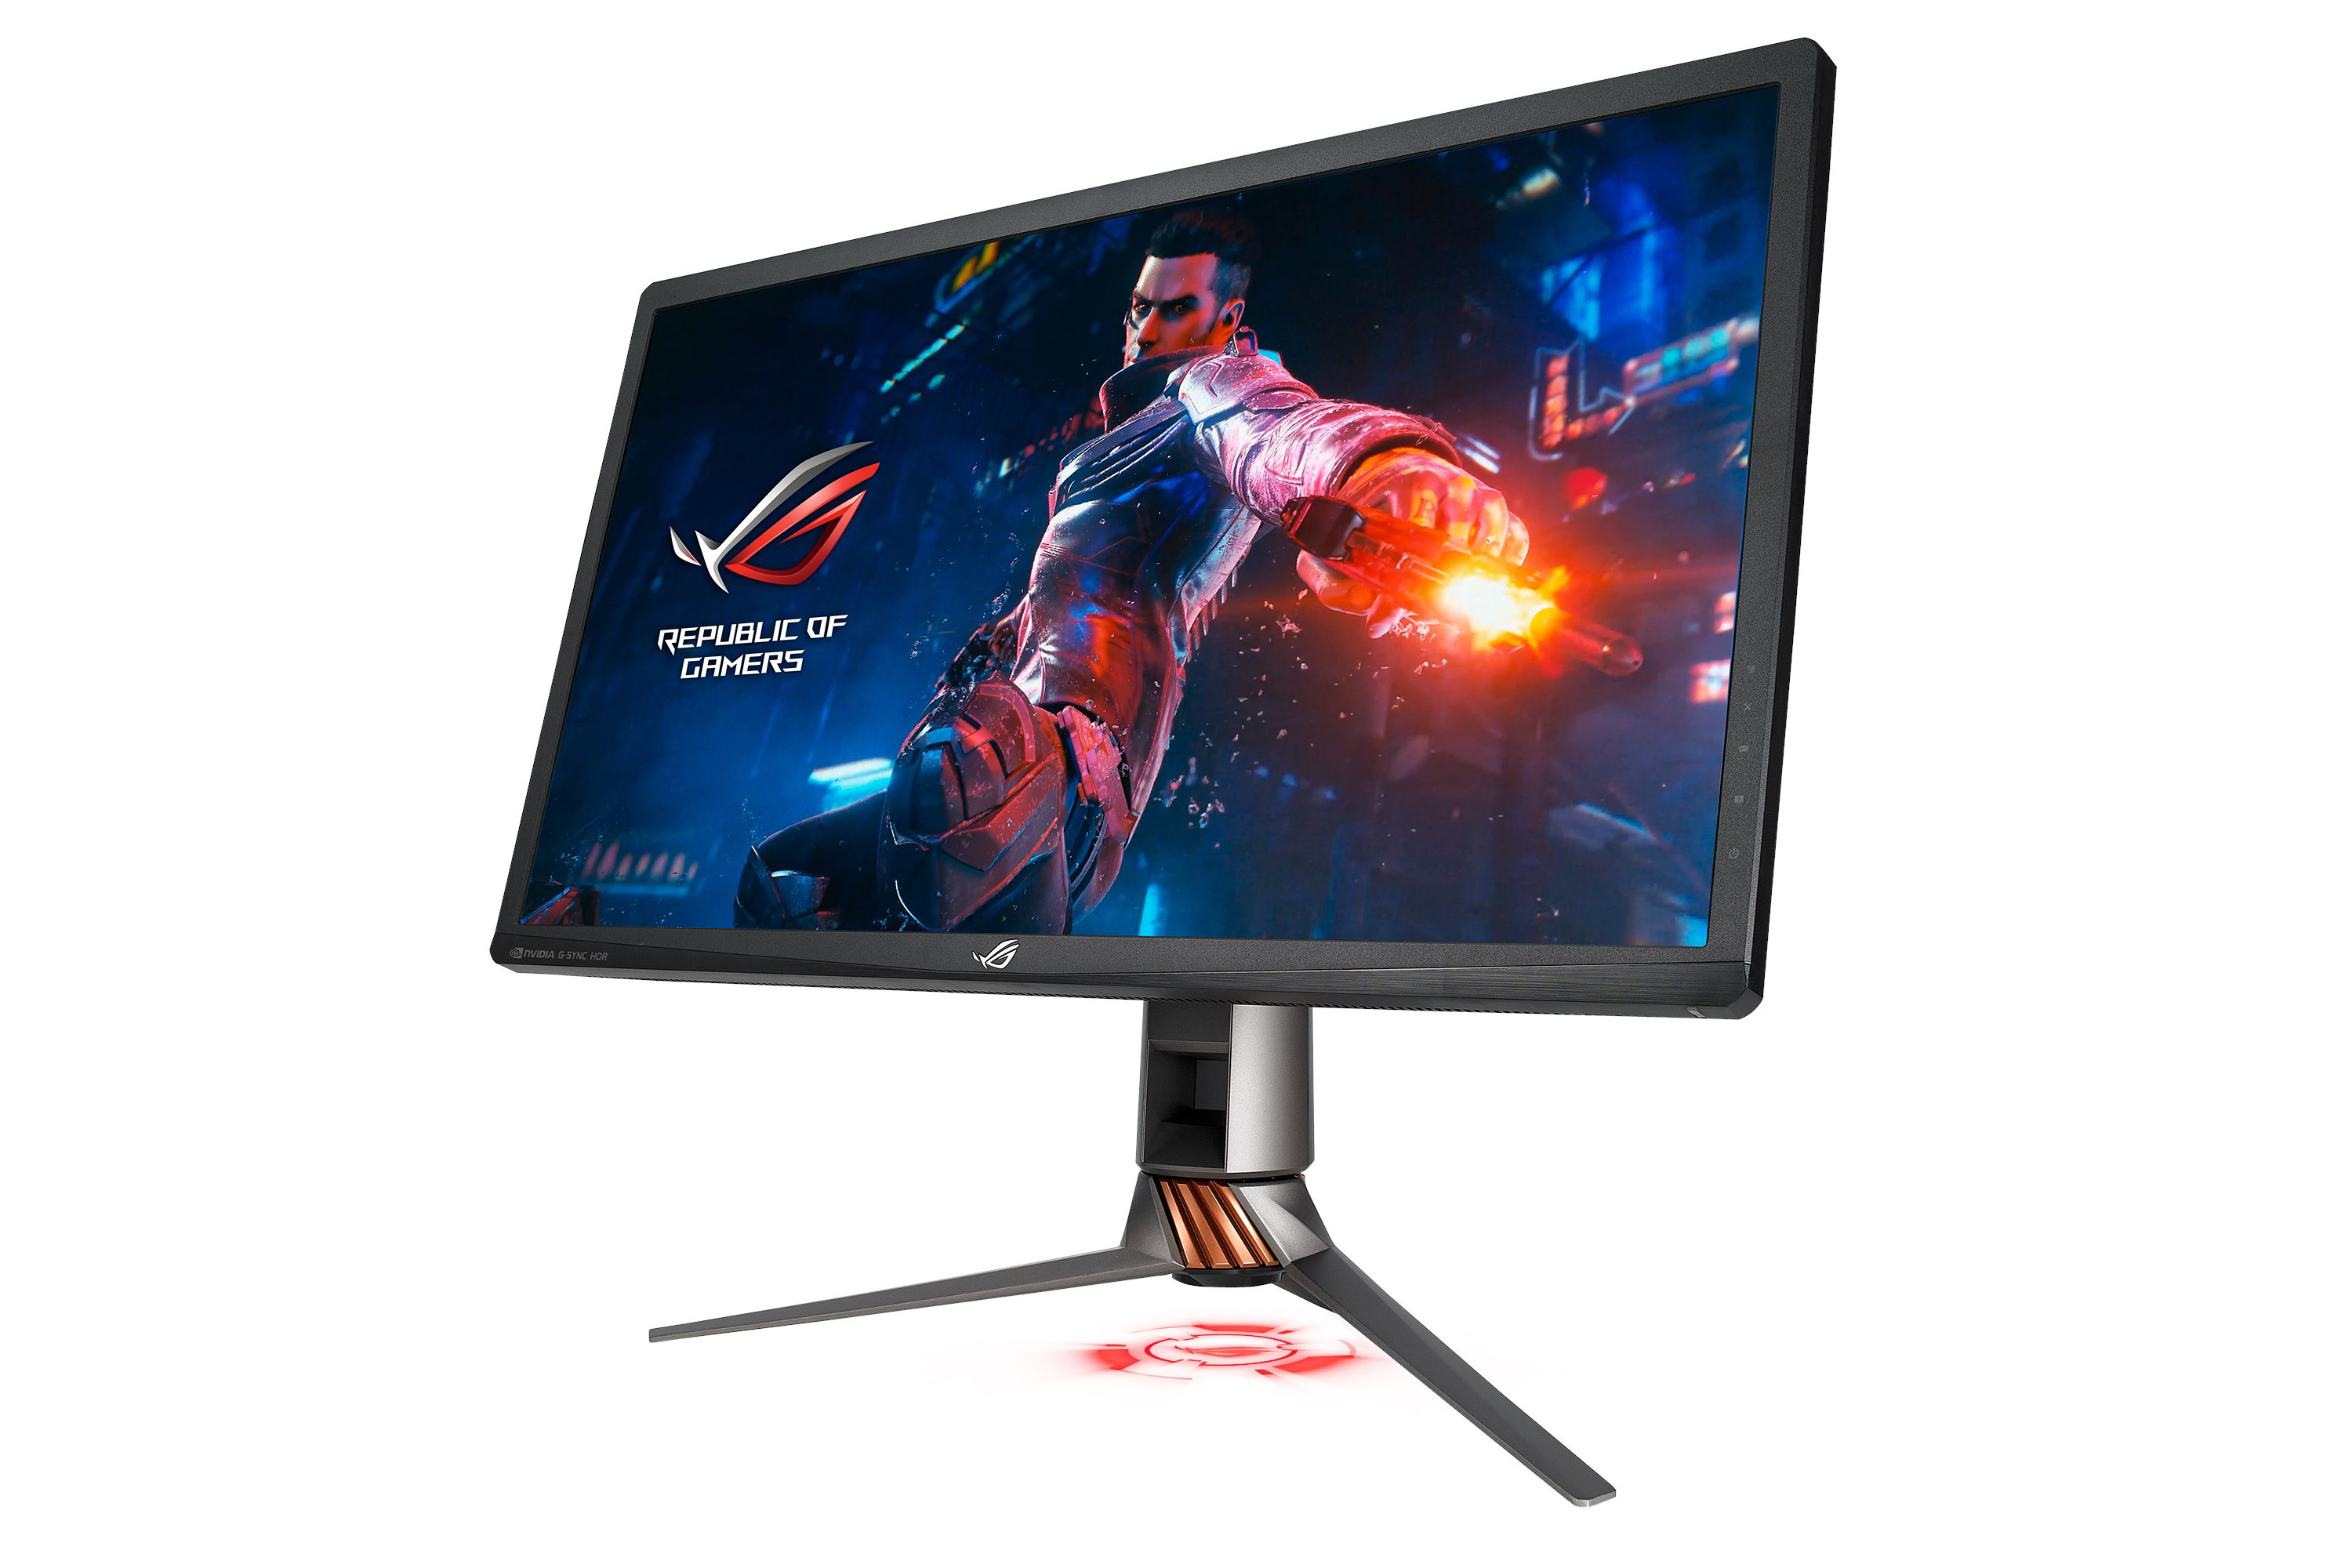 Design and Features - The Asus ROG Swift PG27UQ G-SYNC HDR Monitor